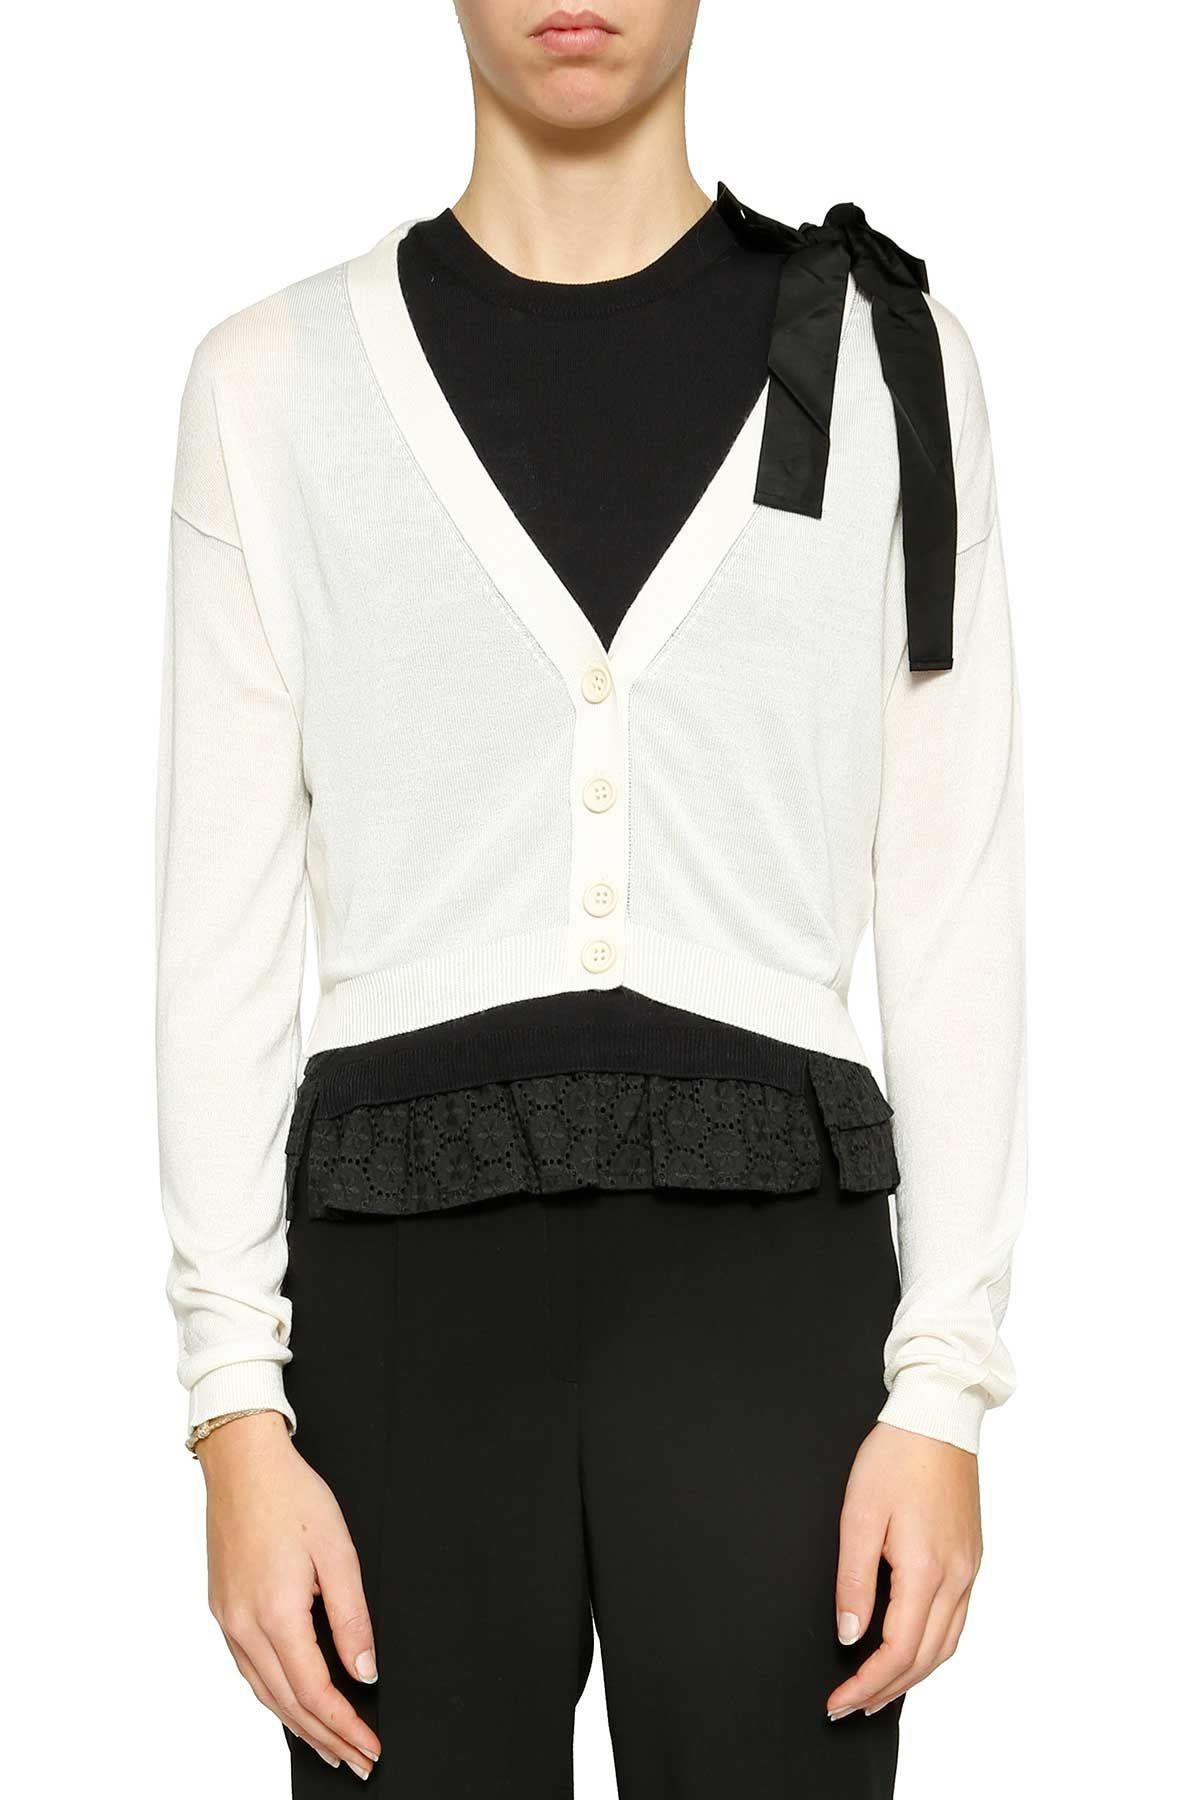 Red Valentino Cropped Cardigan In Avorio